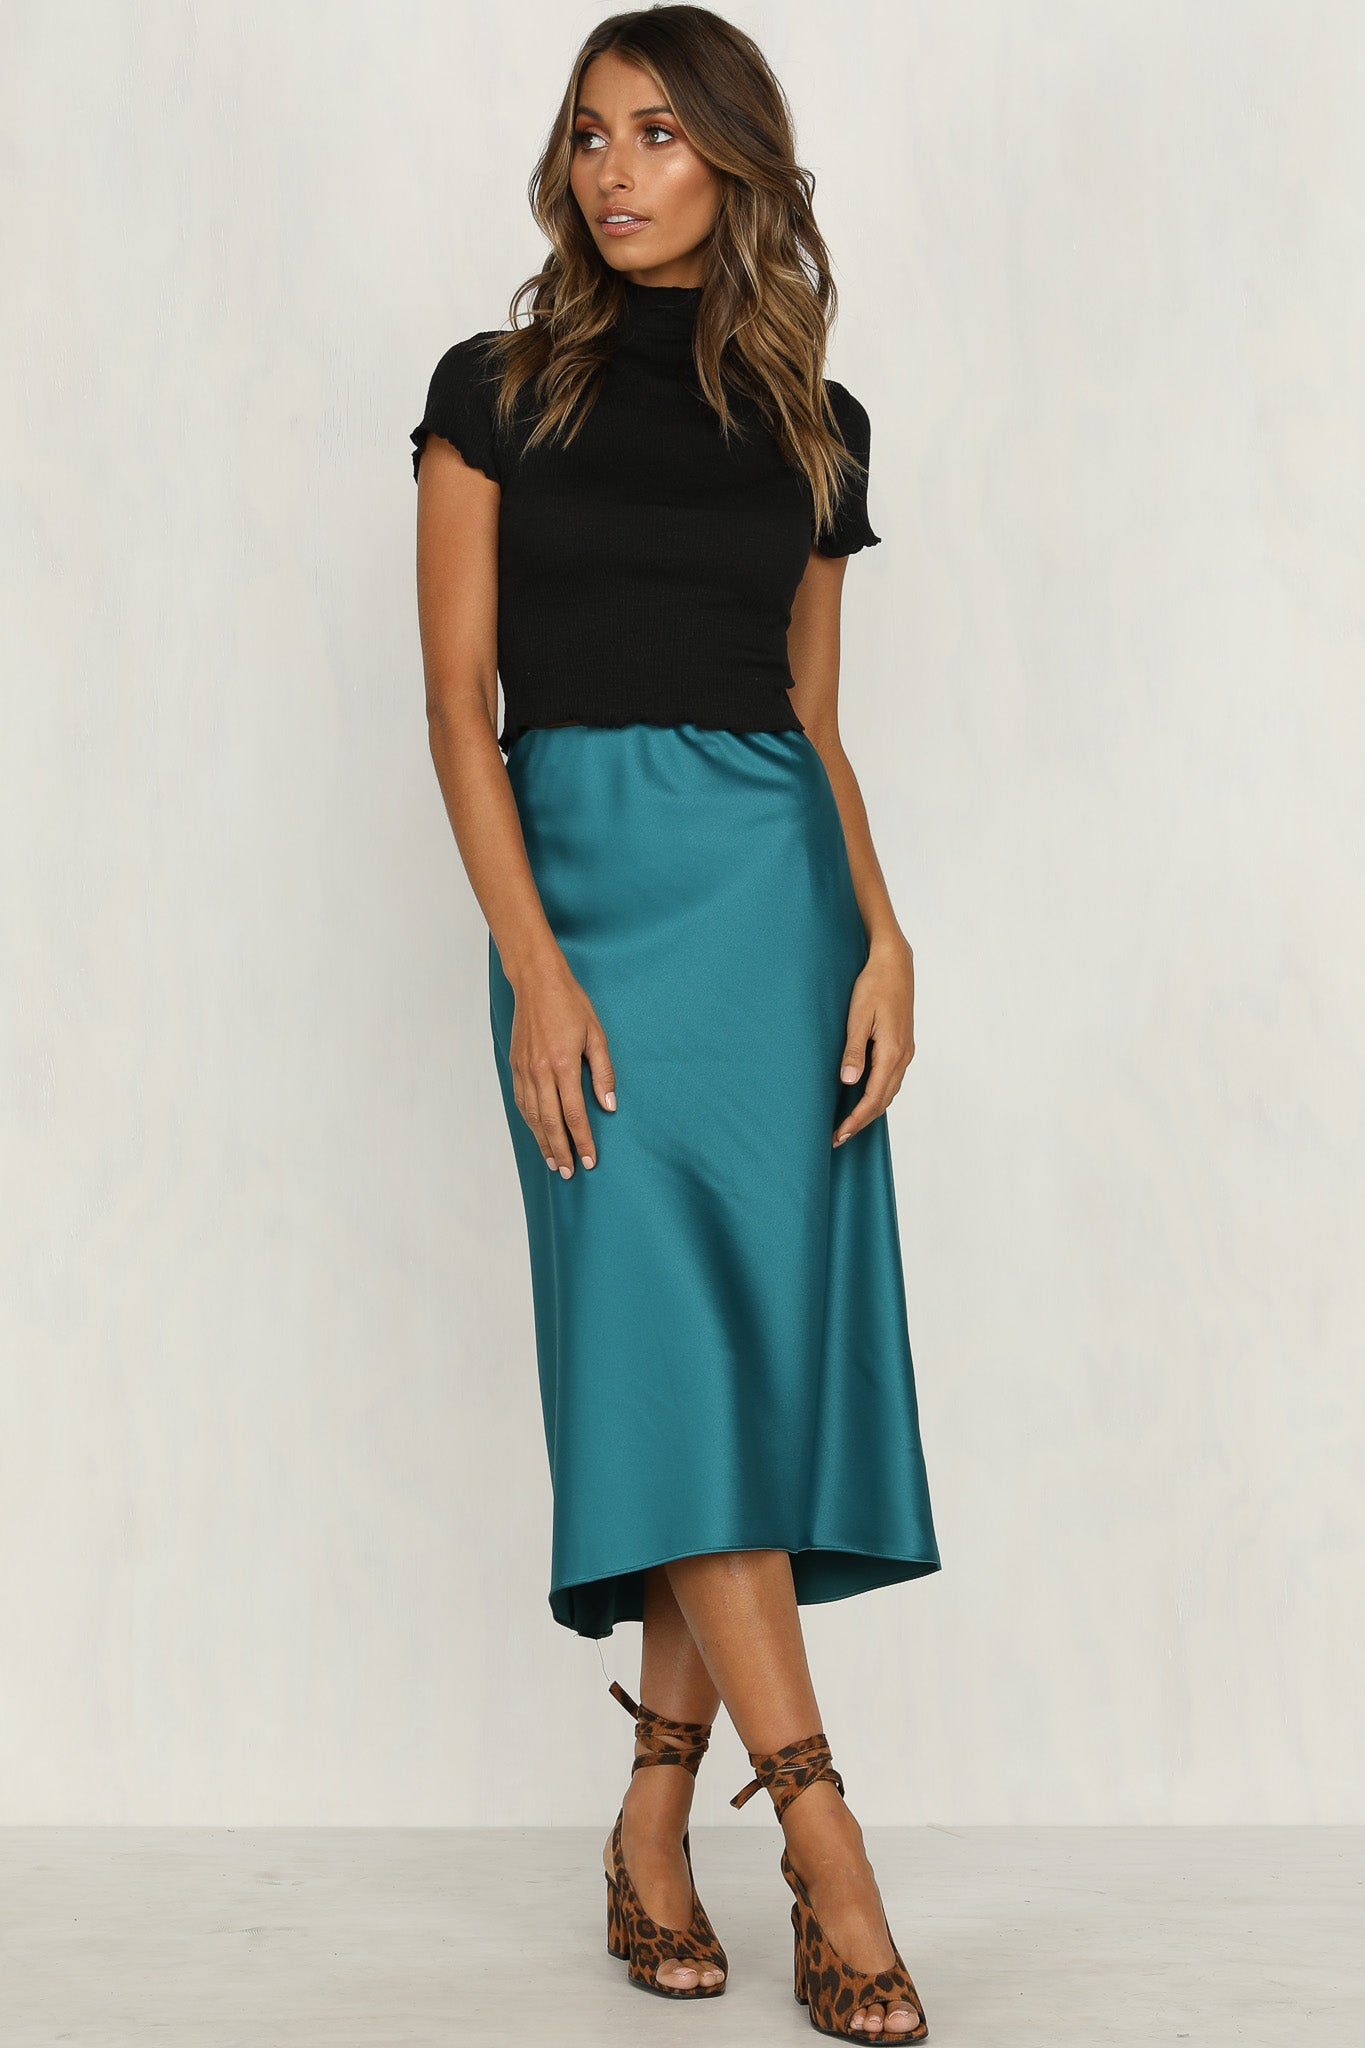 Smooth Operator Midi Skirt (Teal)